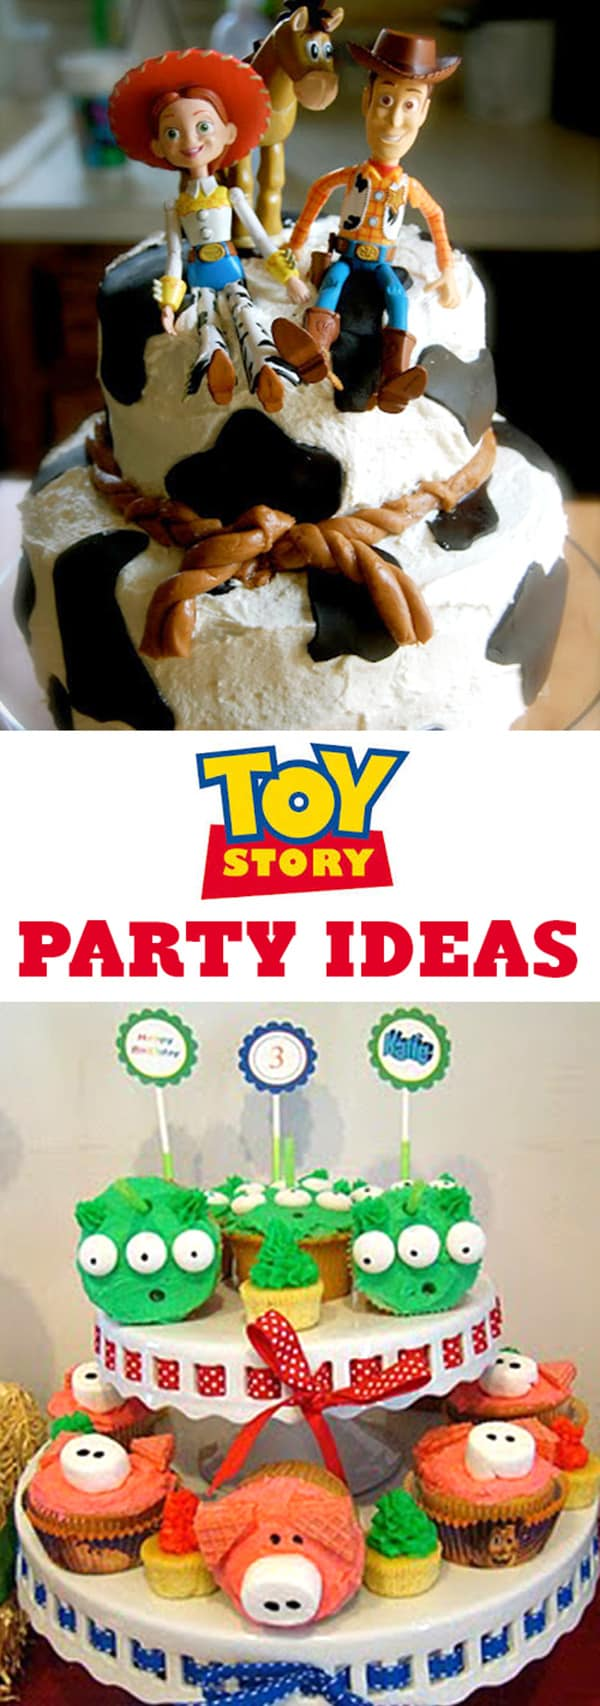 Toy Story Party ideas! Disney Birthday Party Ideas for kids. Cute Woody, Buzz Light Year and the gang themed cakes, cookies, cupcakes, free party printables, party favors, crafts and kid games! LivingLocurto.com #birthday #toystory #party